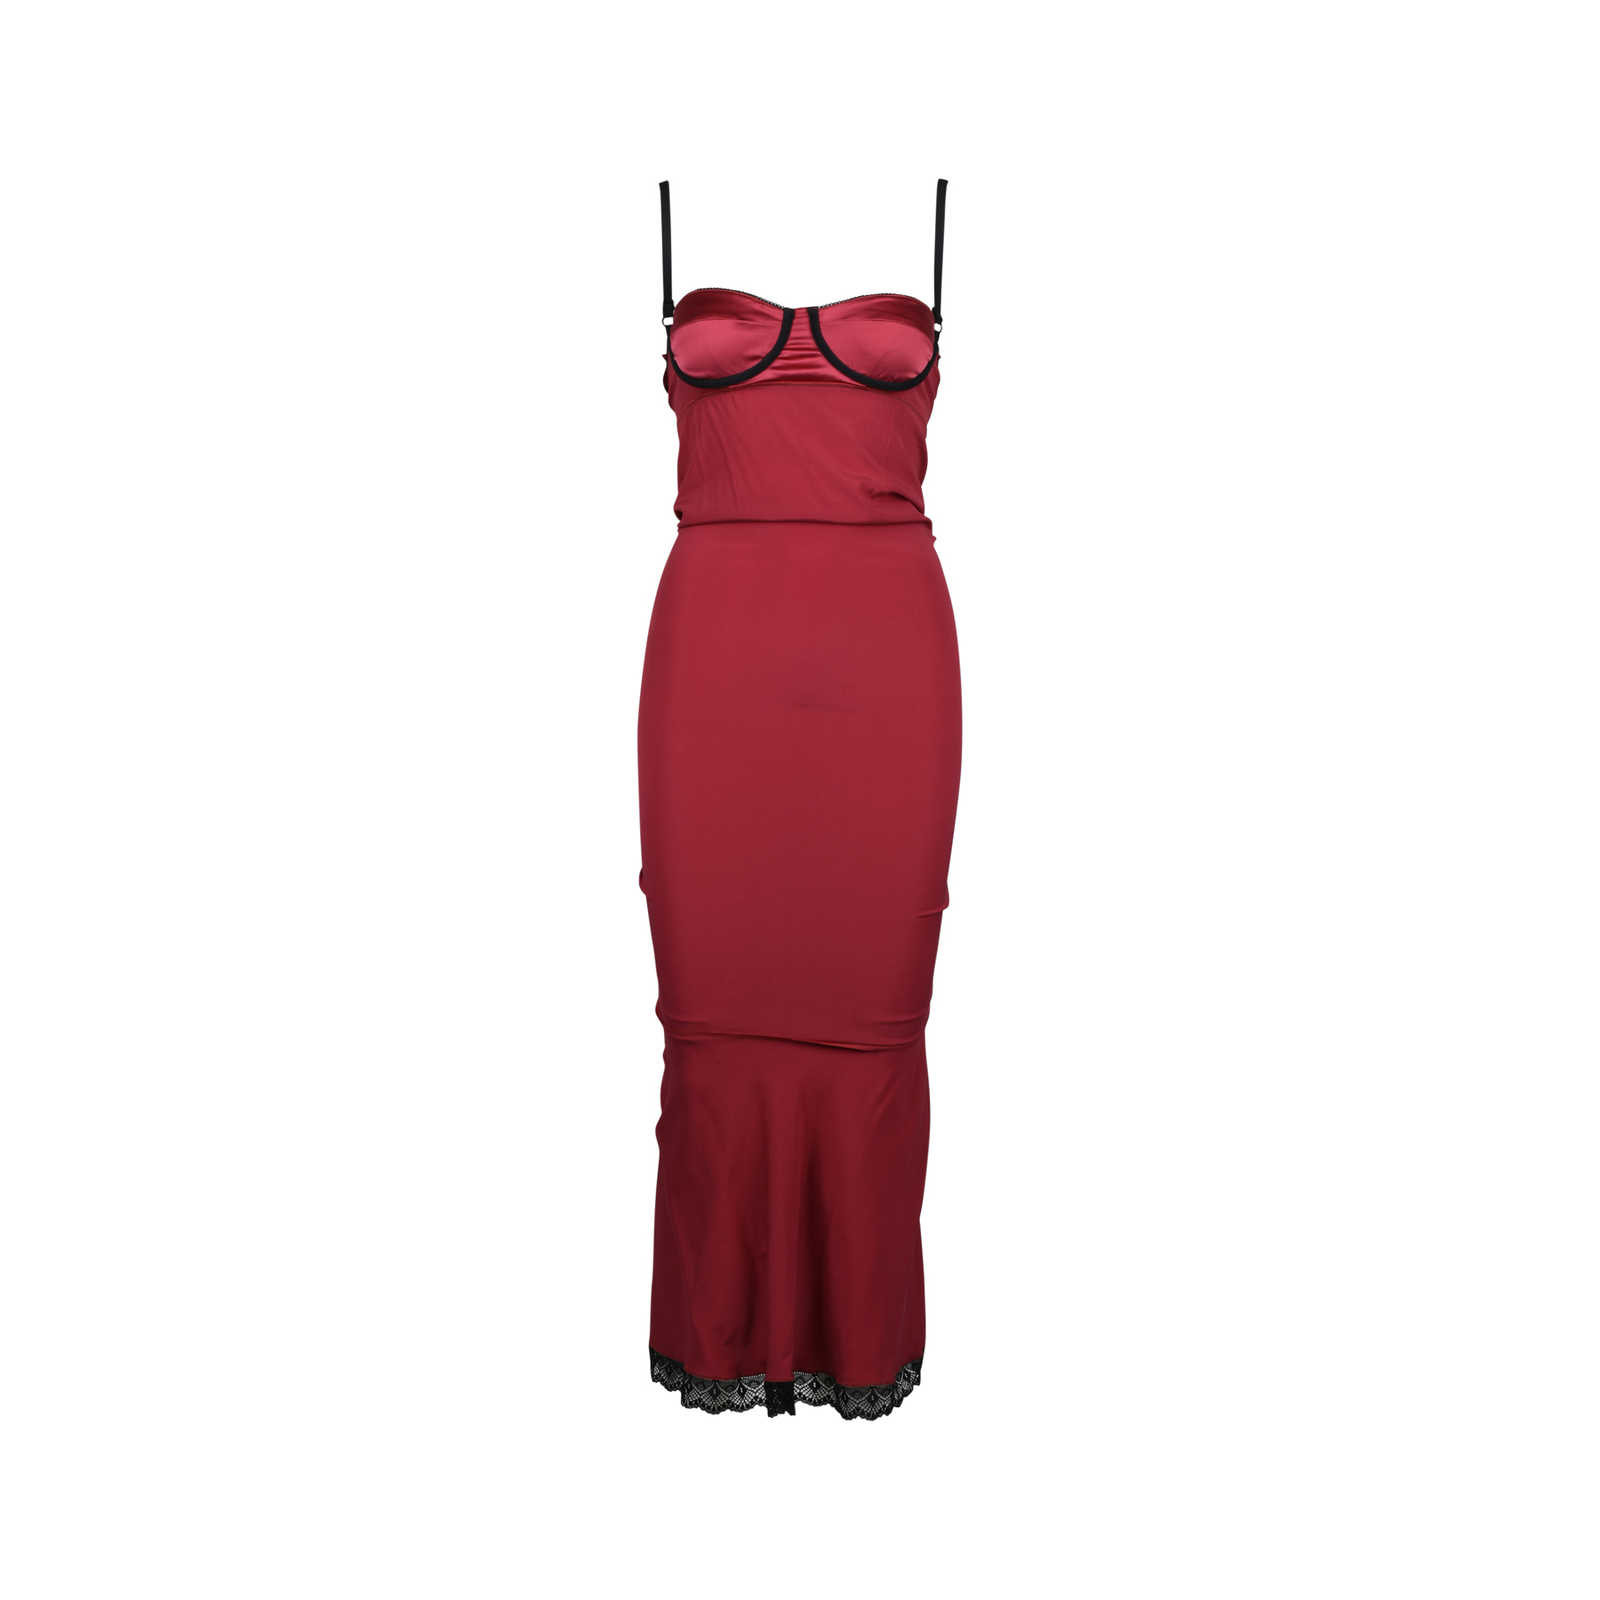 1526dd9fa54d ... Authentic Second Hand Dolce   Gabbana Bodycon Slip Dress  (PSS-148-00020) ...